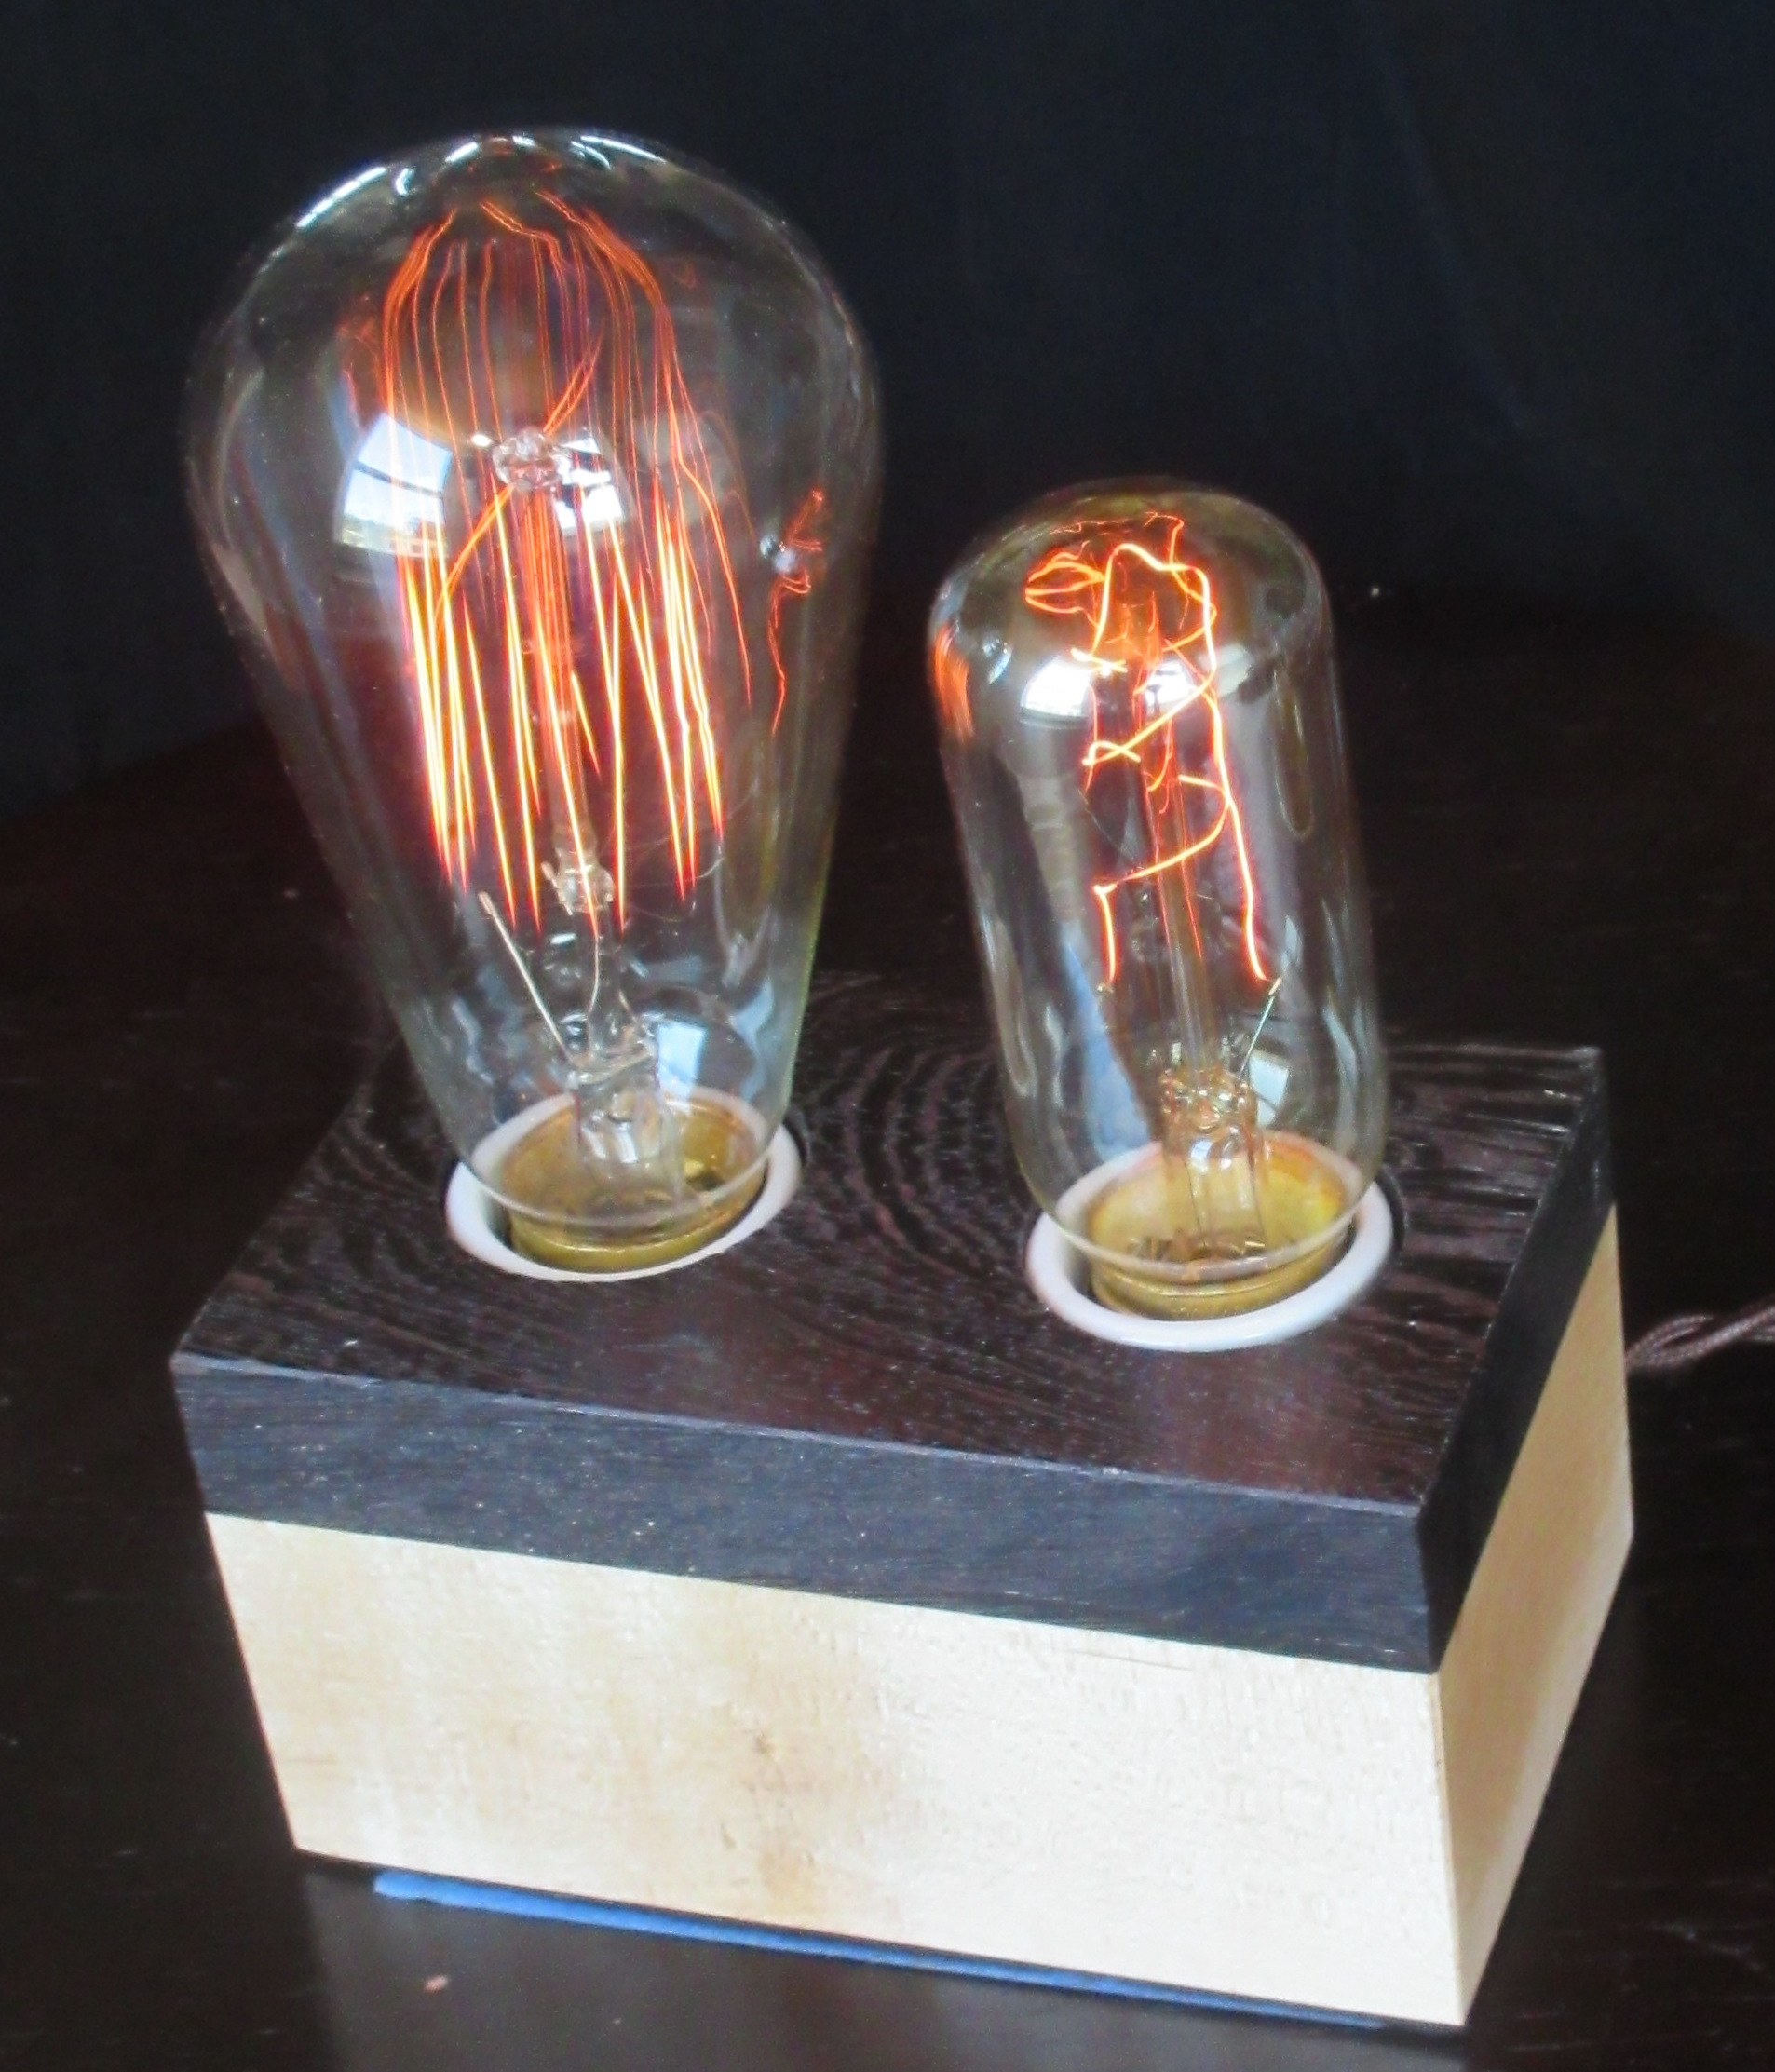 Wenge and Maple - 2 lamps